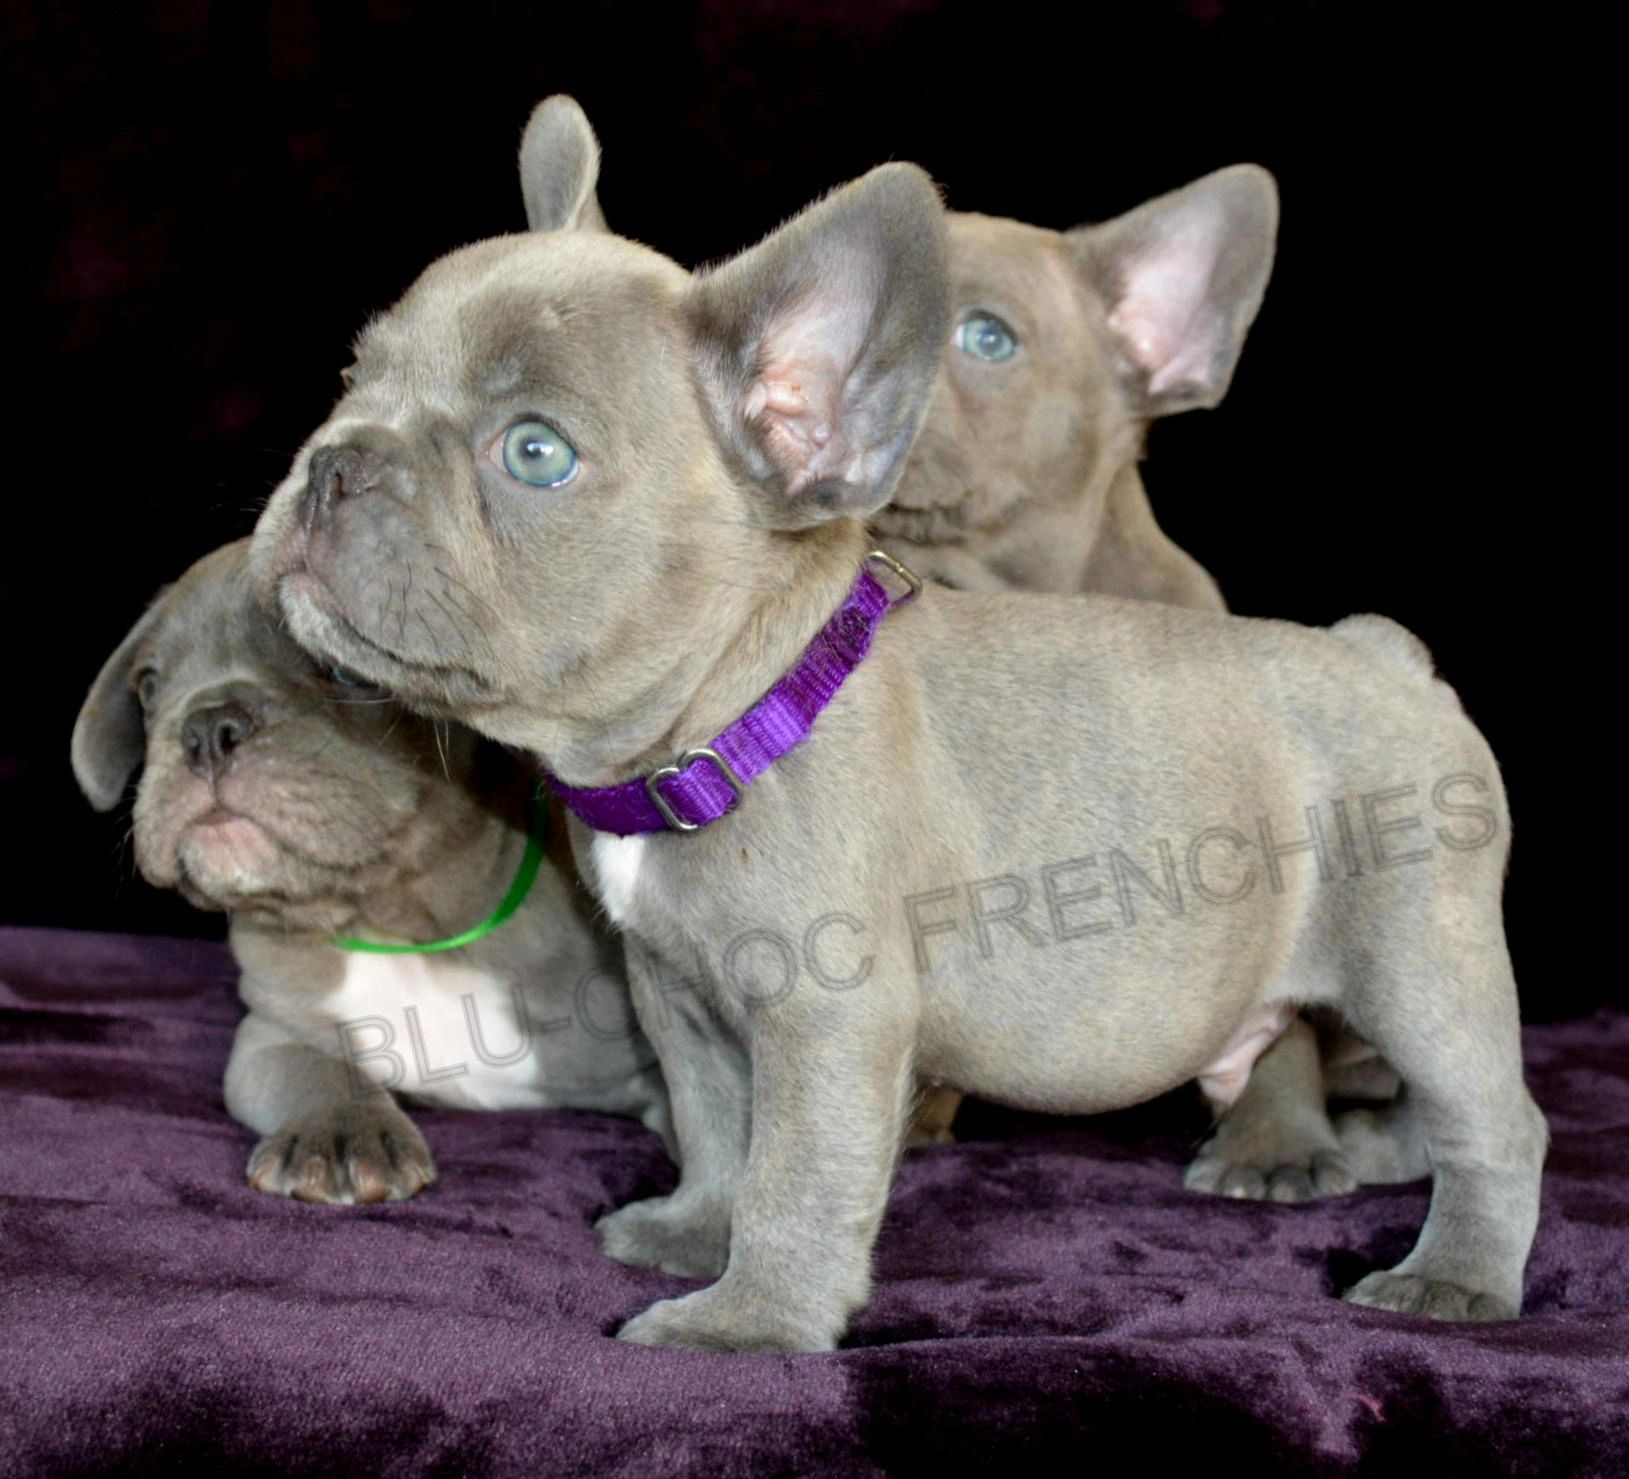 lilac frenchies - french bulldogs for sale, french bulldog